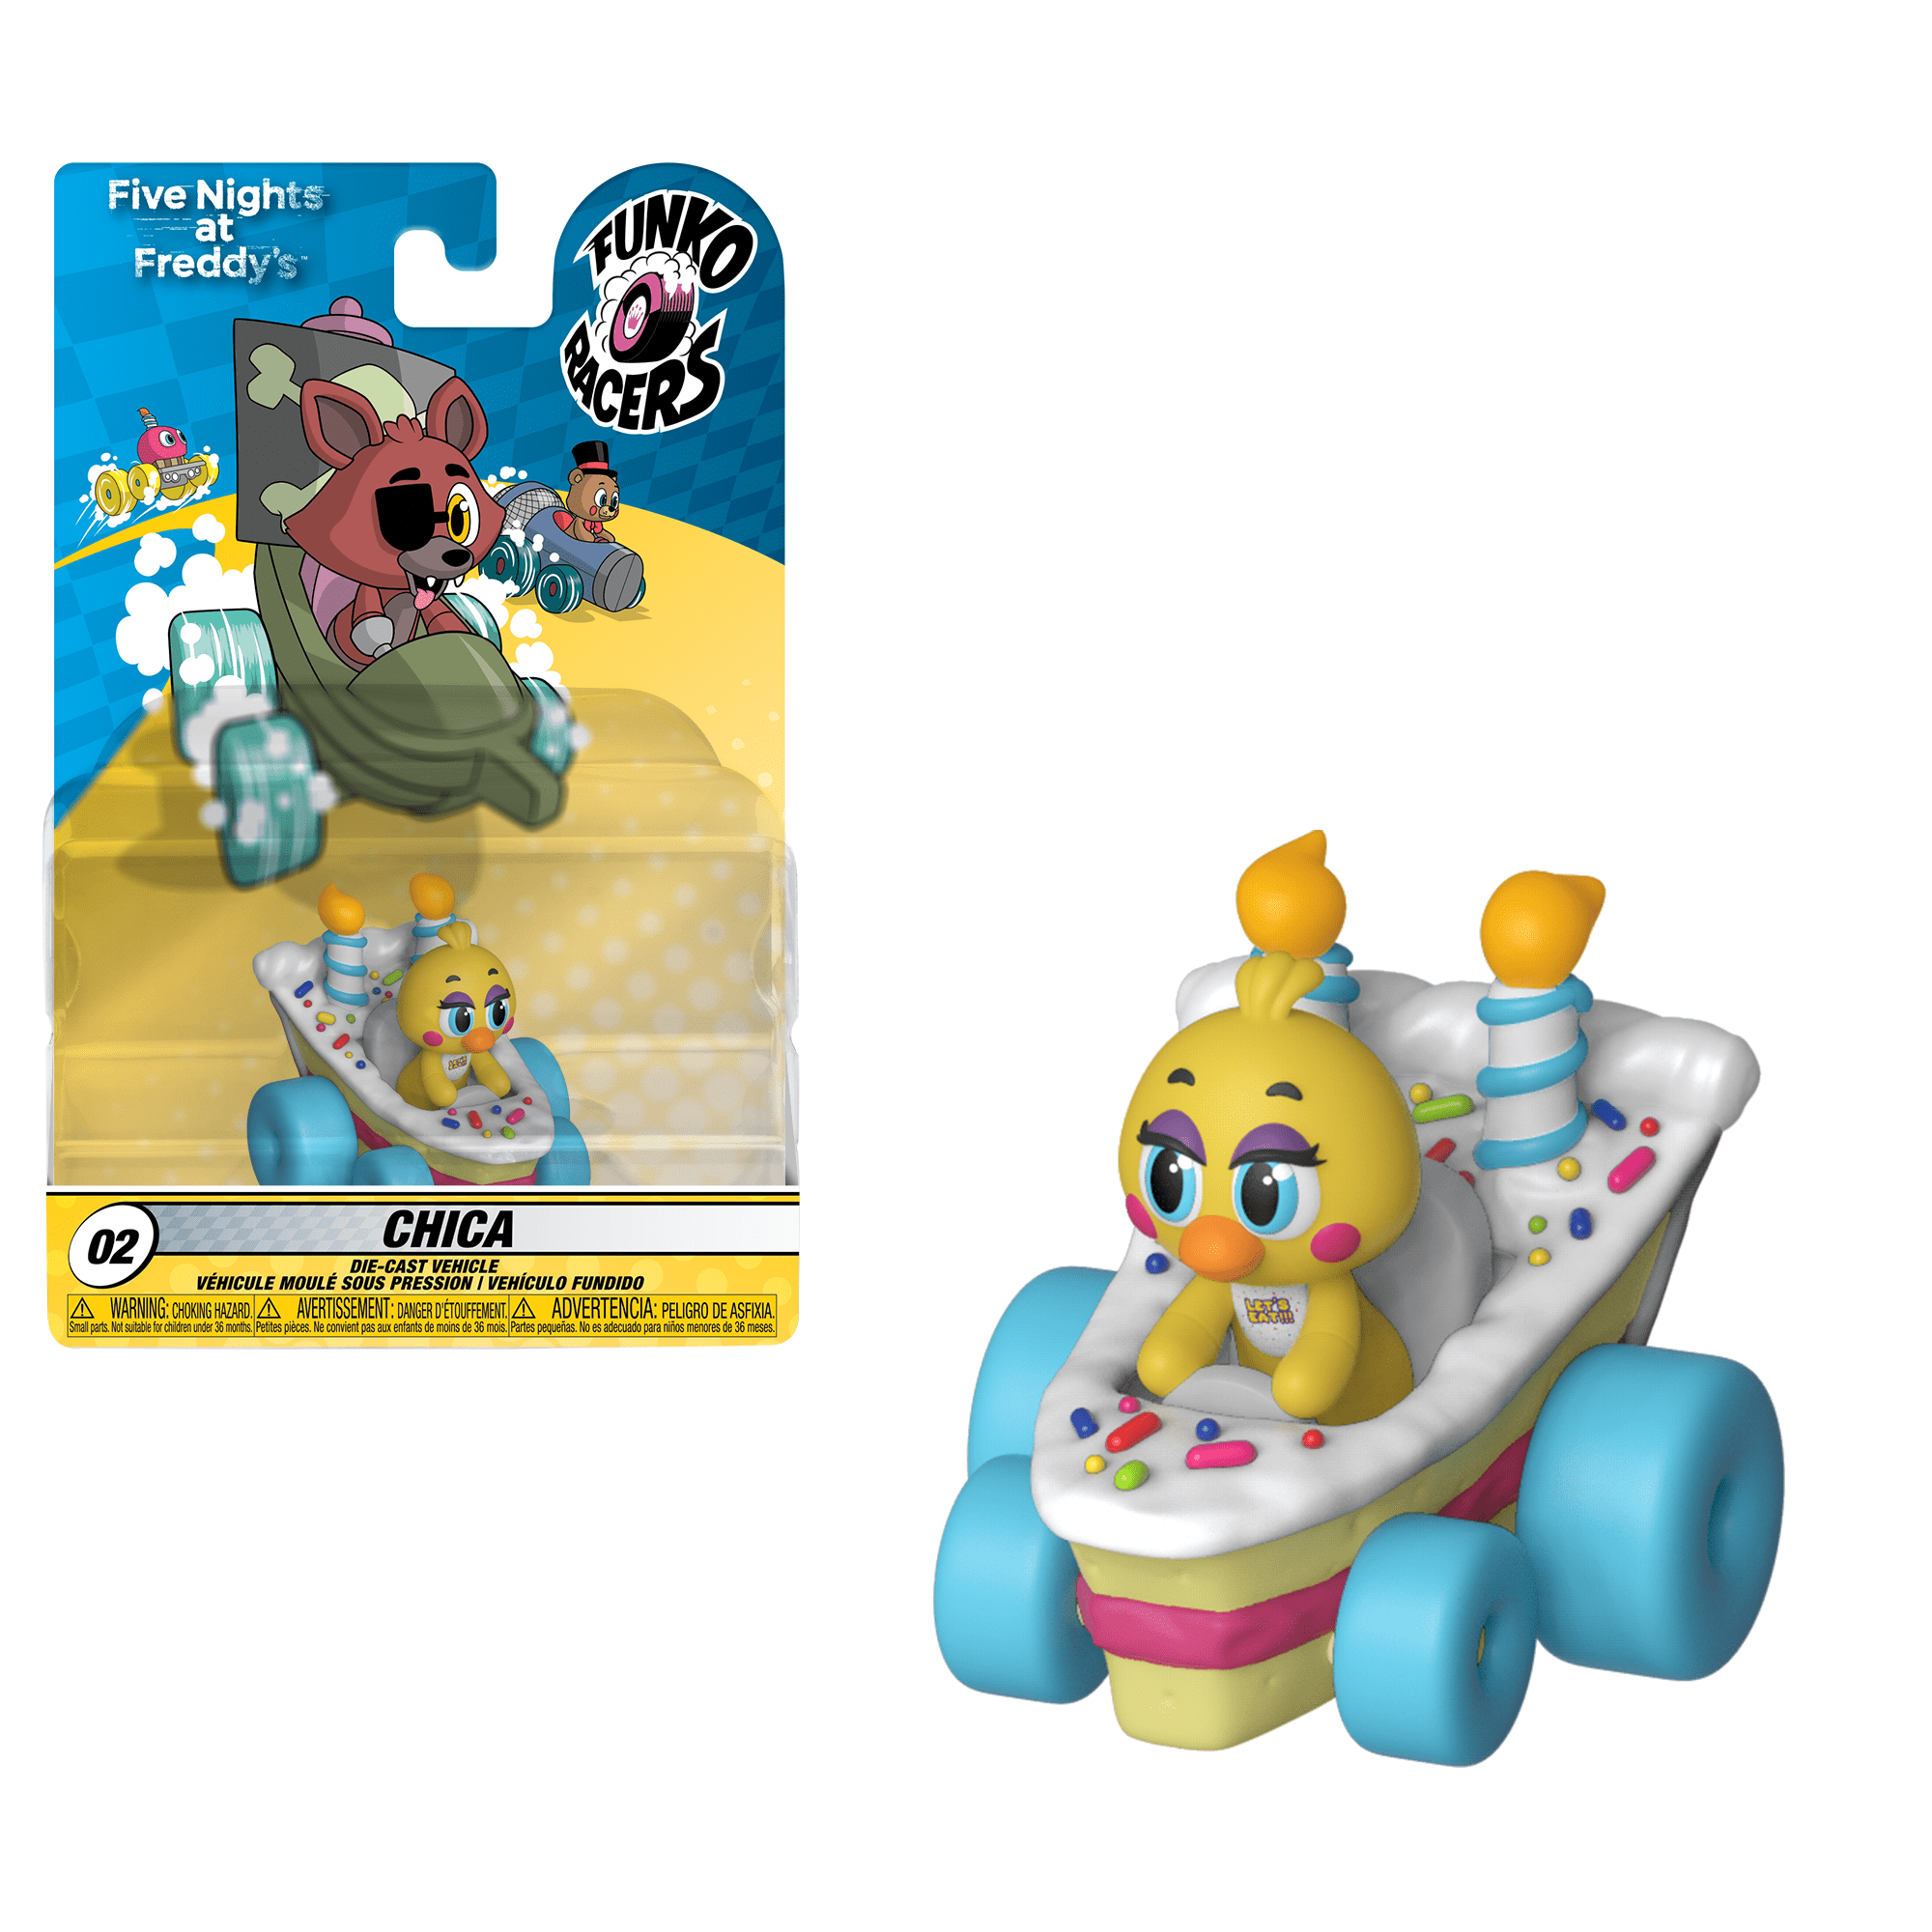 5 Nights At Freddy's Chica chica the chicken   catalog   funko - everyone is a fan of